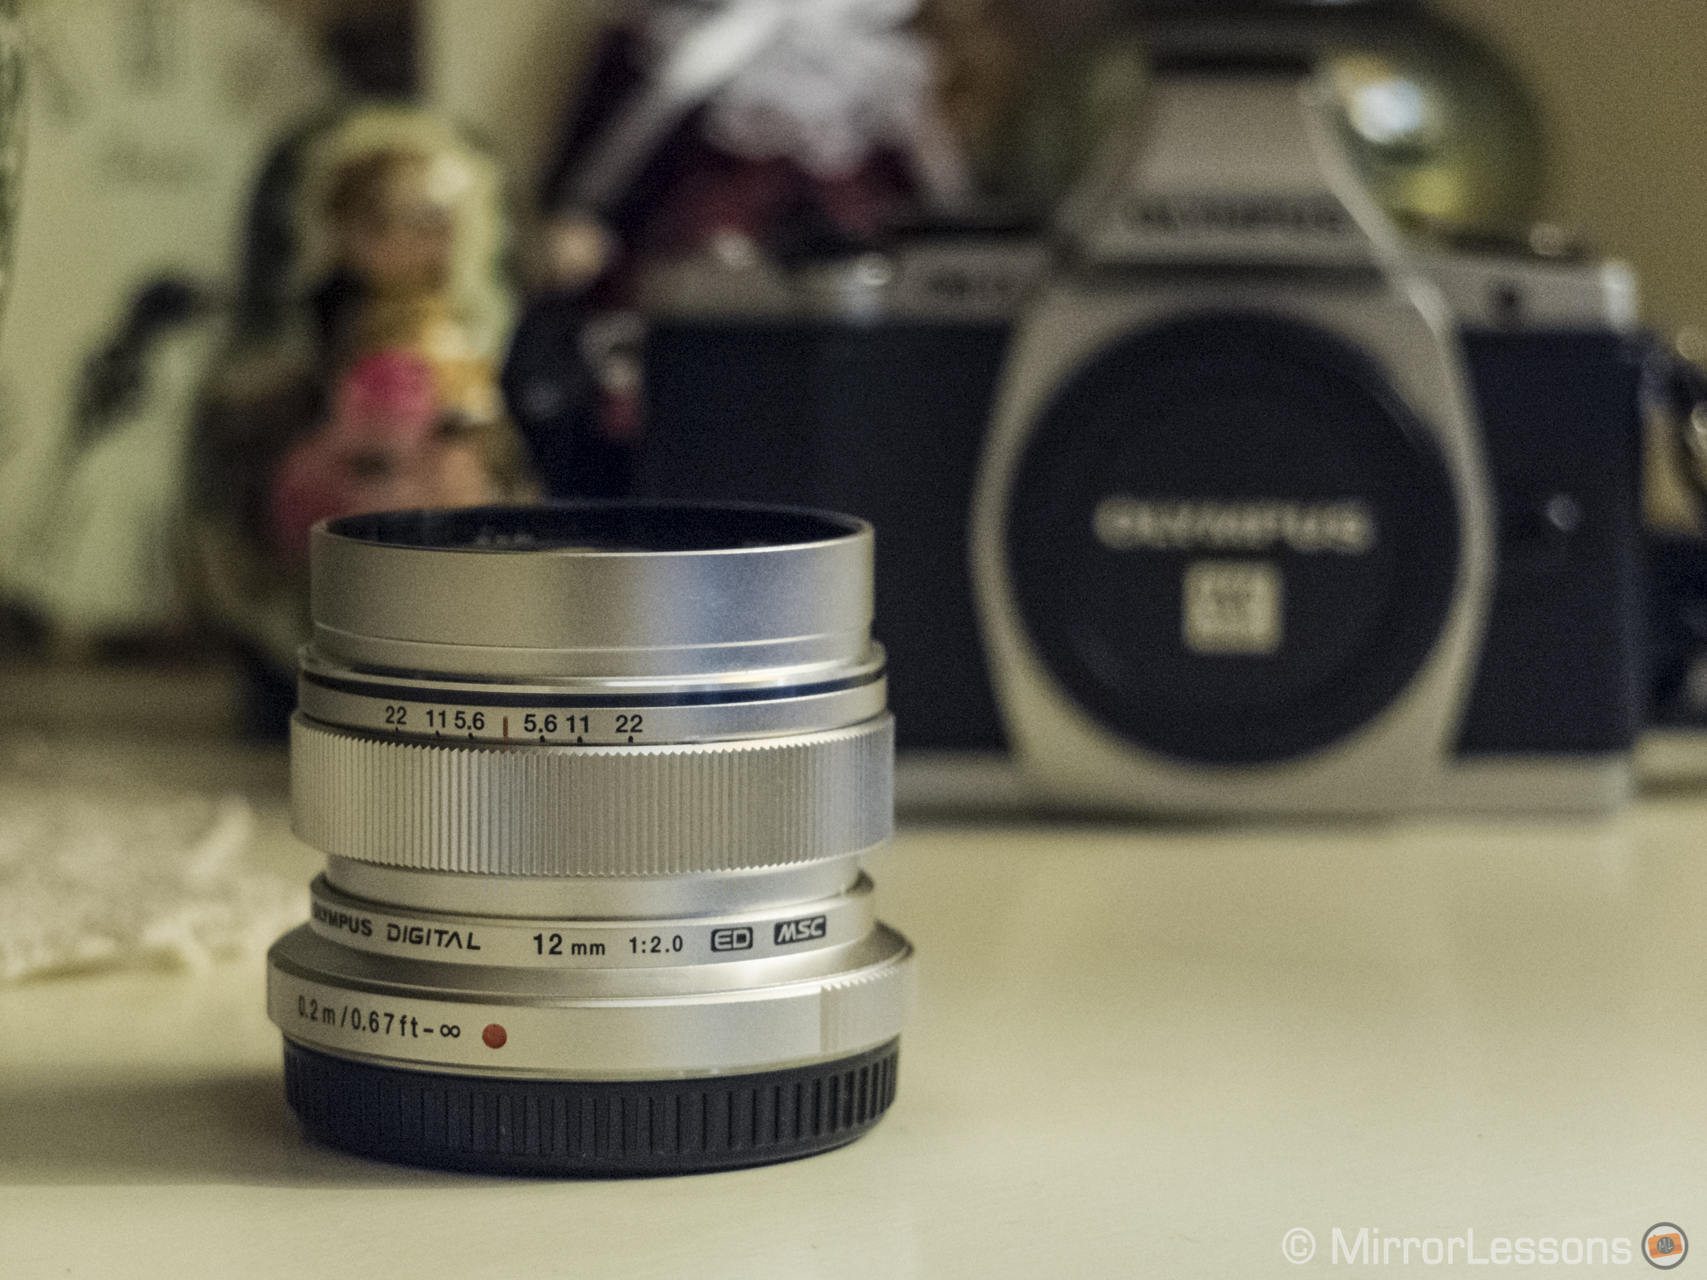 The Olympus M.Zuiko 12mm f/2 lens